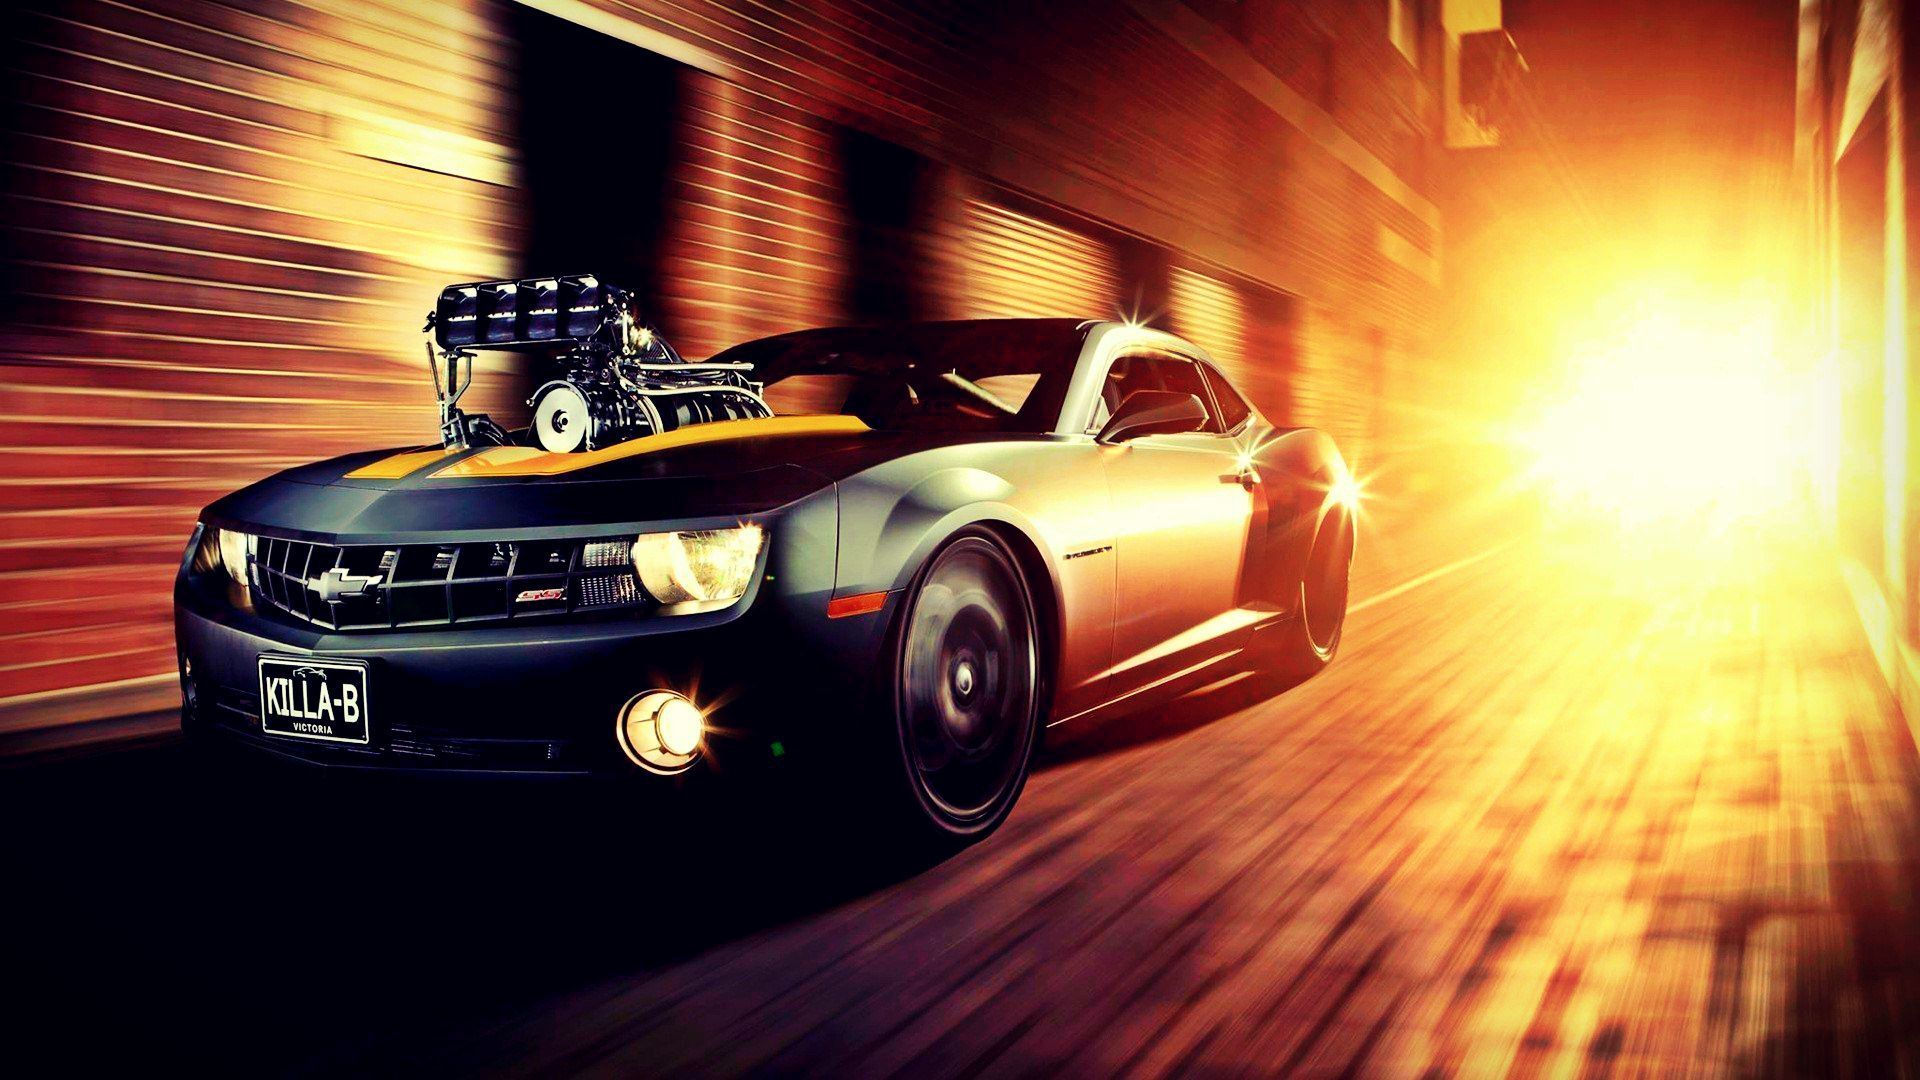 Wallpapers For Girls Iphone 3d 11 Awesome And Cool Cars Wallpapers Awesome 11